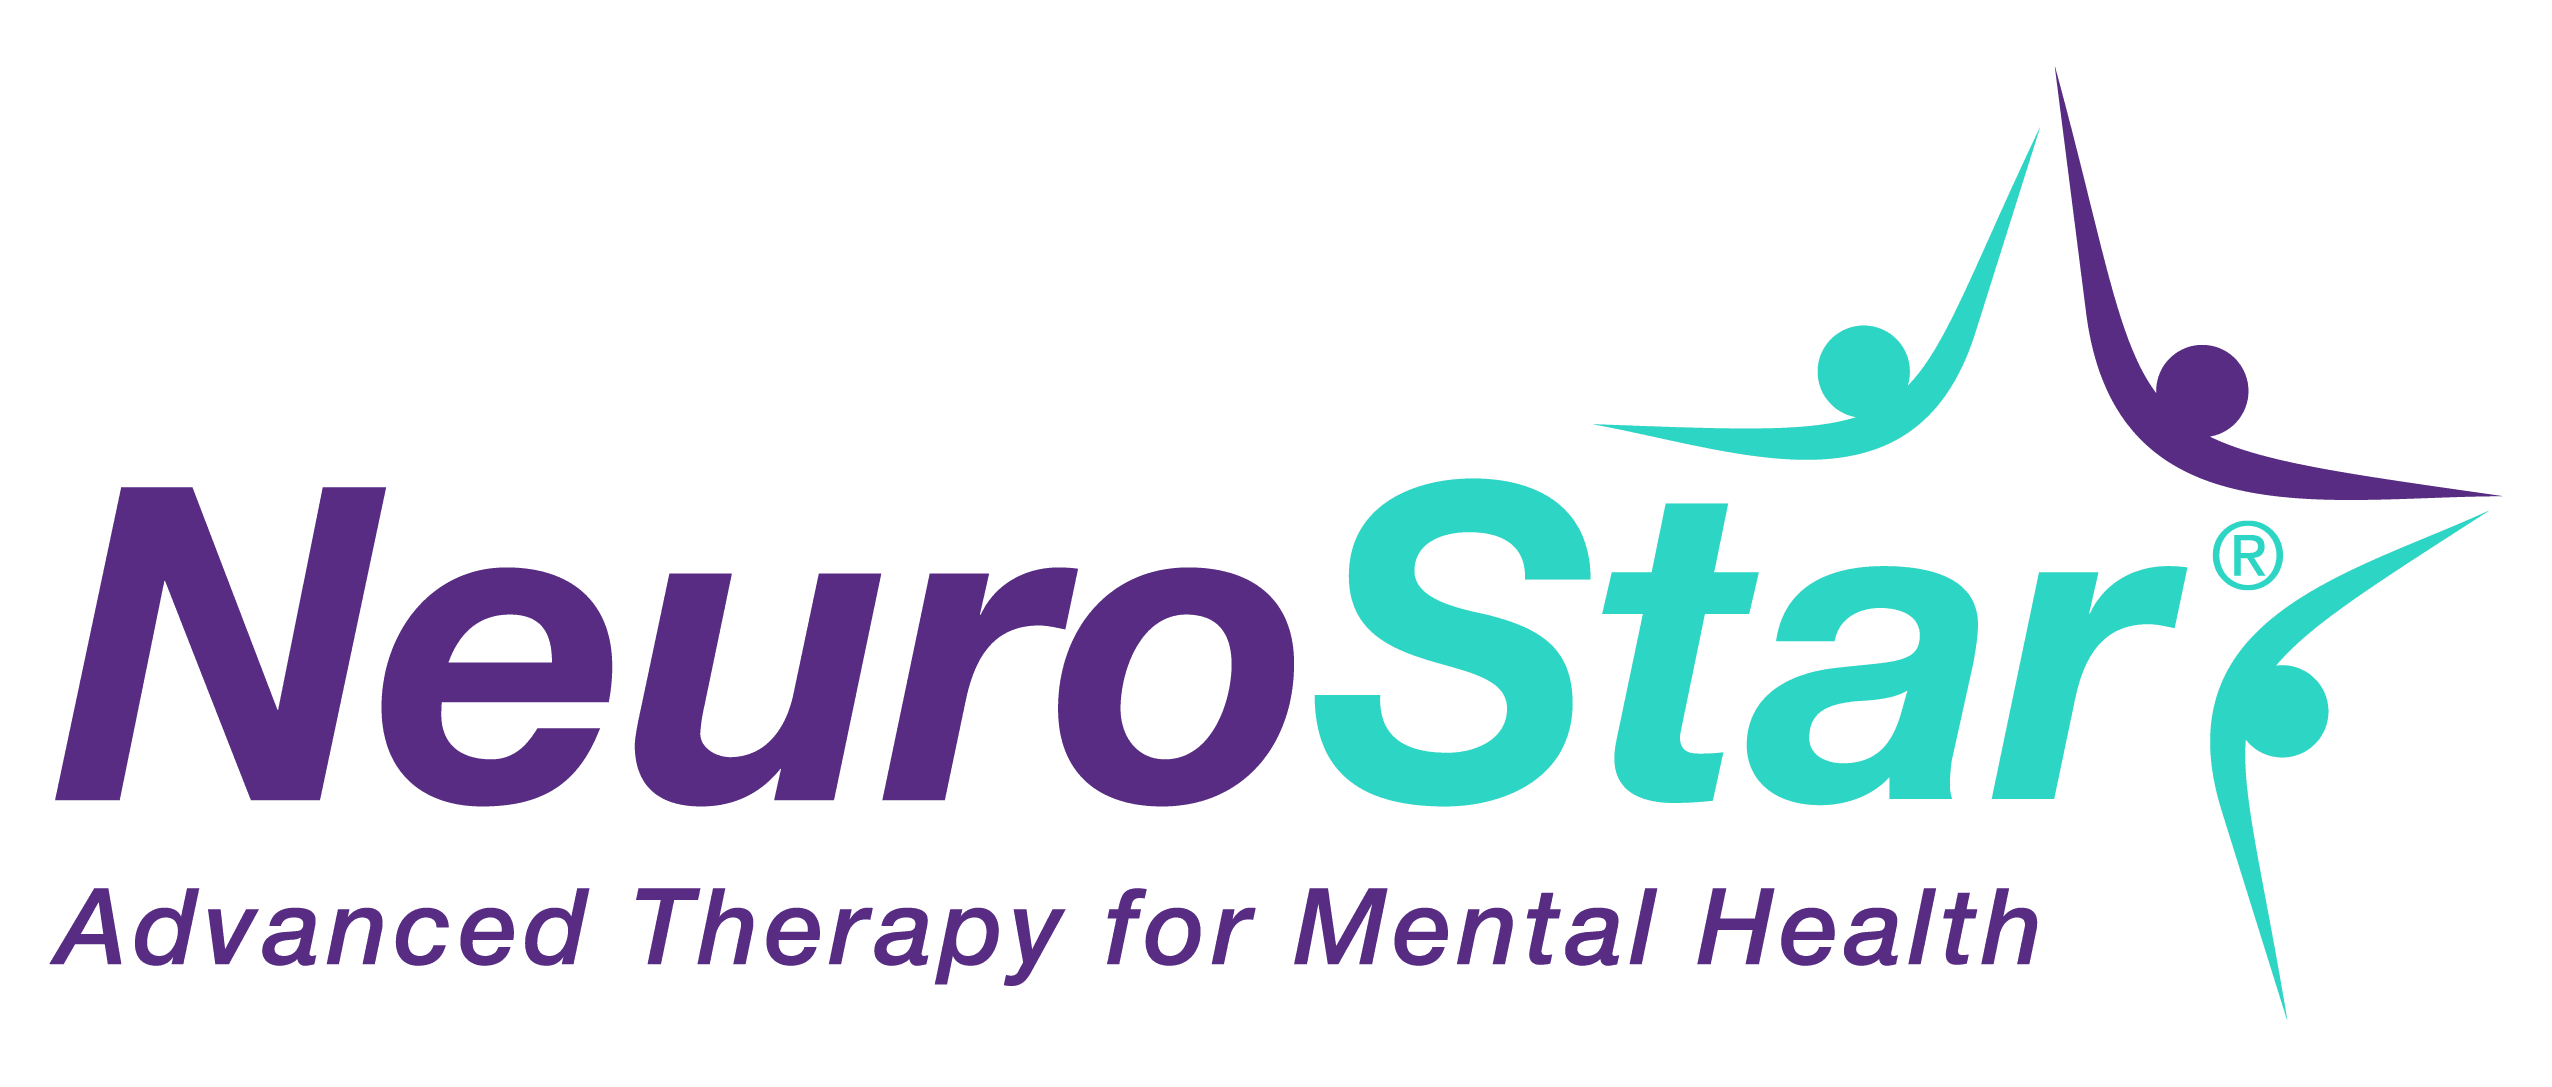 NeuroStar logo that says Advanced Therapy for Mental Health